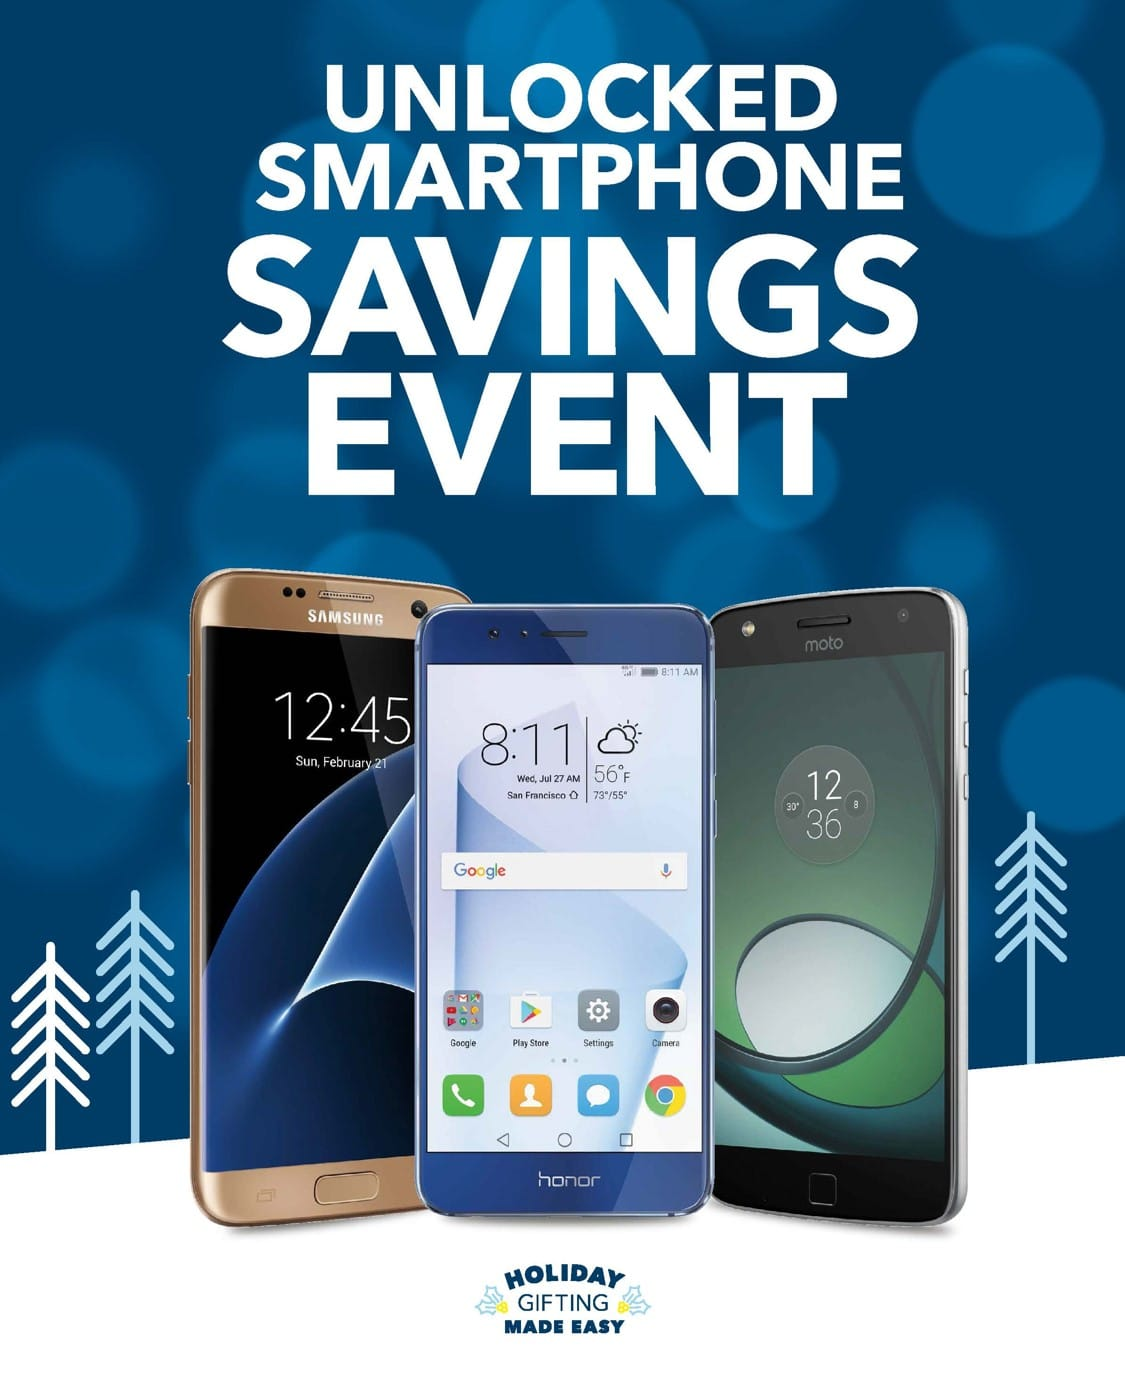 Unlocked Smartphone savings event at Best Buy [sponsored]